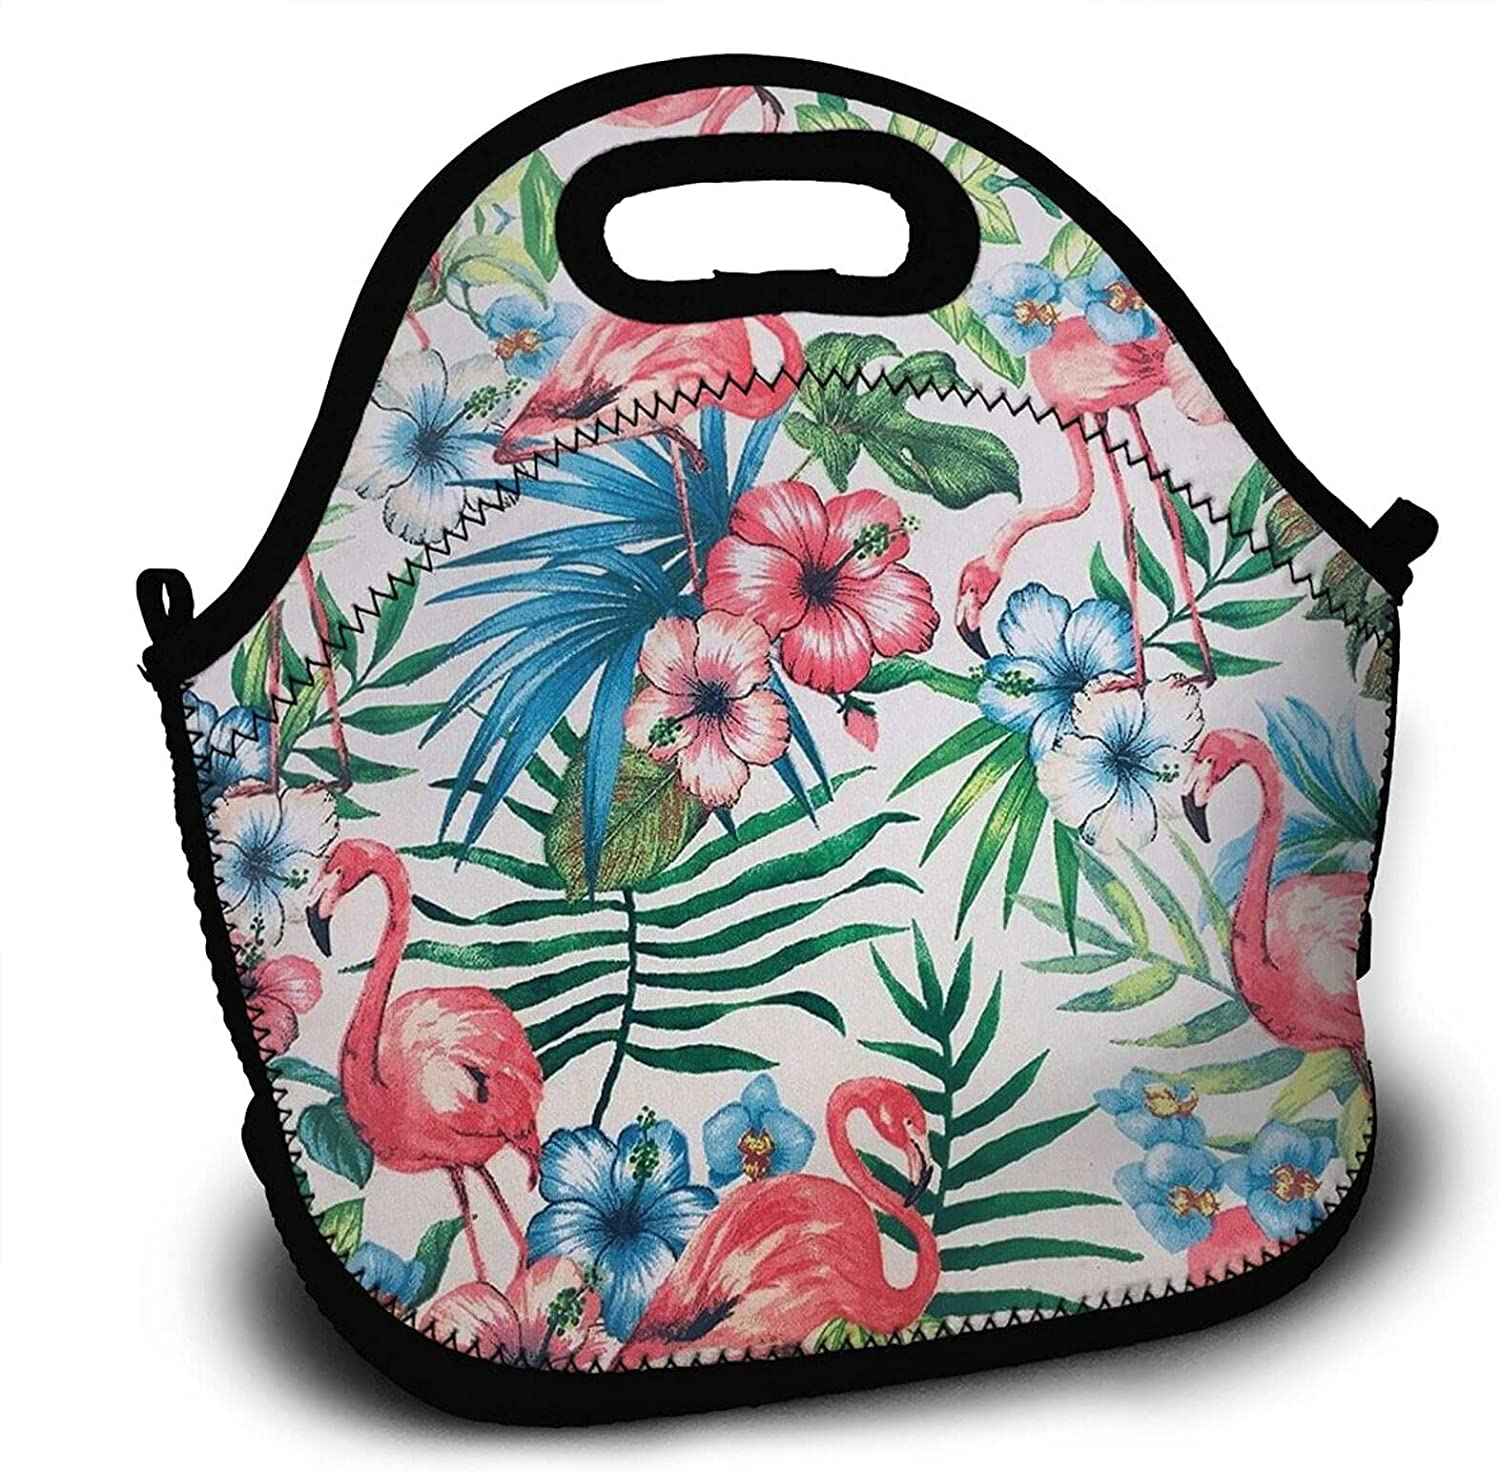 Flamingo Lunch Bags For Women Bag Men Challenge the lowest price of Japan ☆ Box Washable Over item handling Wit